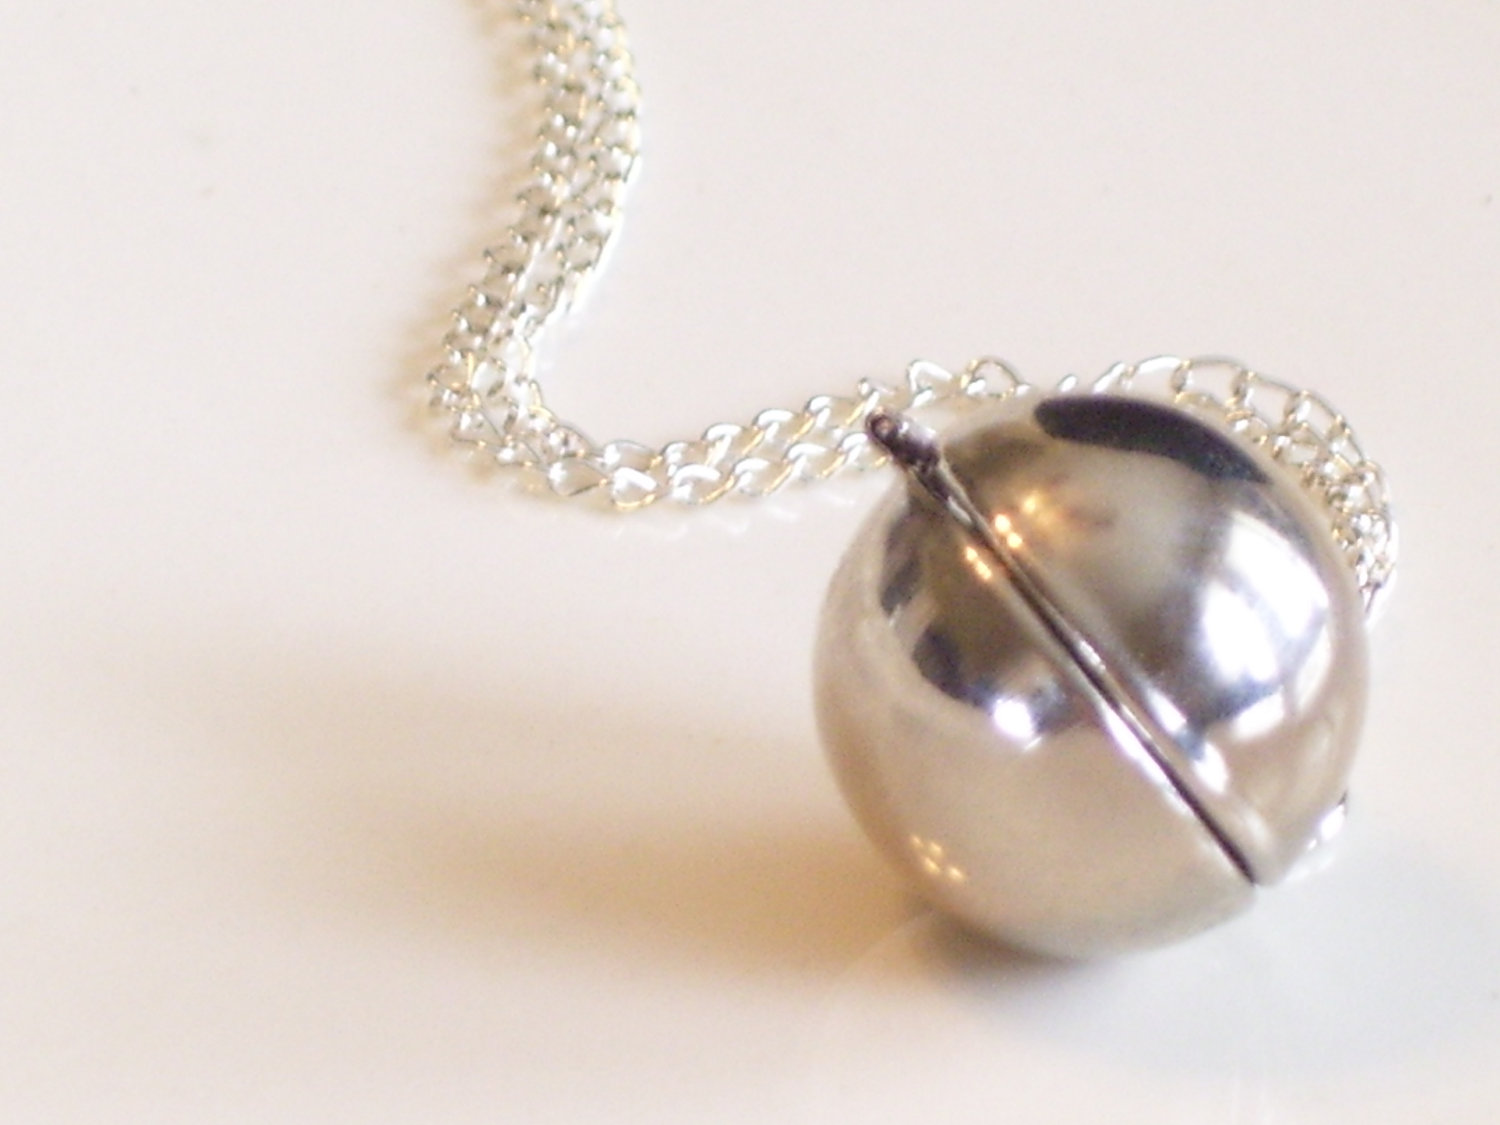 Secret Message Silver Ball Locket Necklace  Felt. Pendant Jewelry. Cushion Rings. Gorgeous Watches. Silver Watches. Awareness Bracelet. Forged Rings. Classification Diamond. Fluorite Pendant